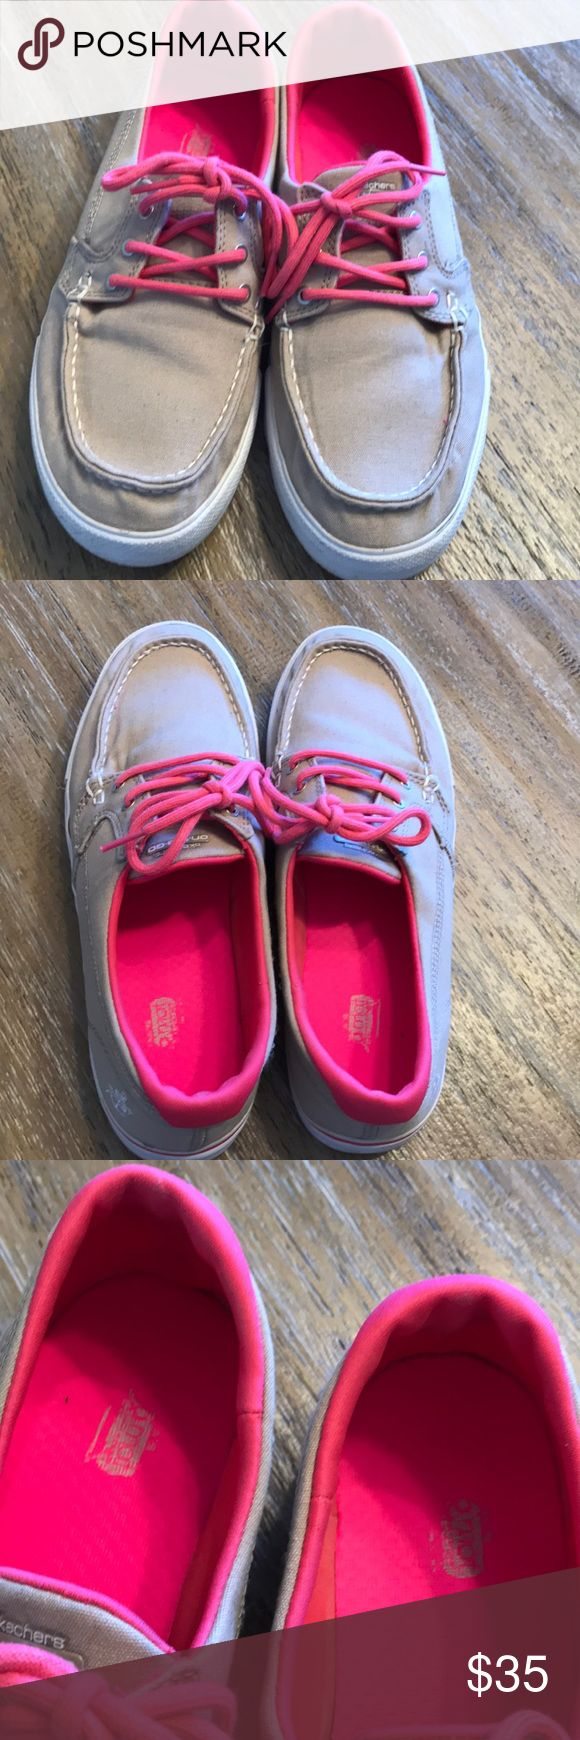 Skechers On-the-GO!! Tan and hot pink loafer style walking shoes!! Super comfy and in great condition other that some dirt on the sides and bottoms! Will clean and sanitize before shipping! Skechers Shoes Sneakers